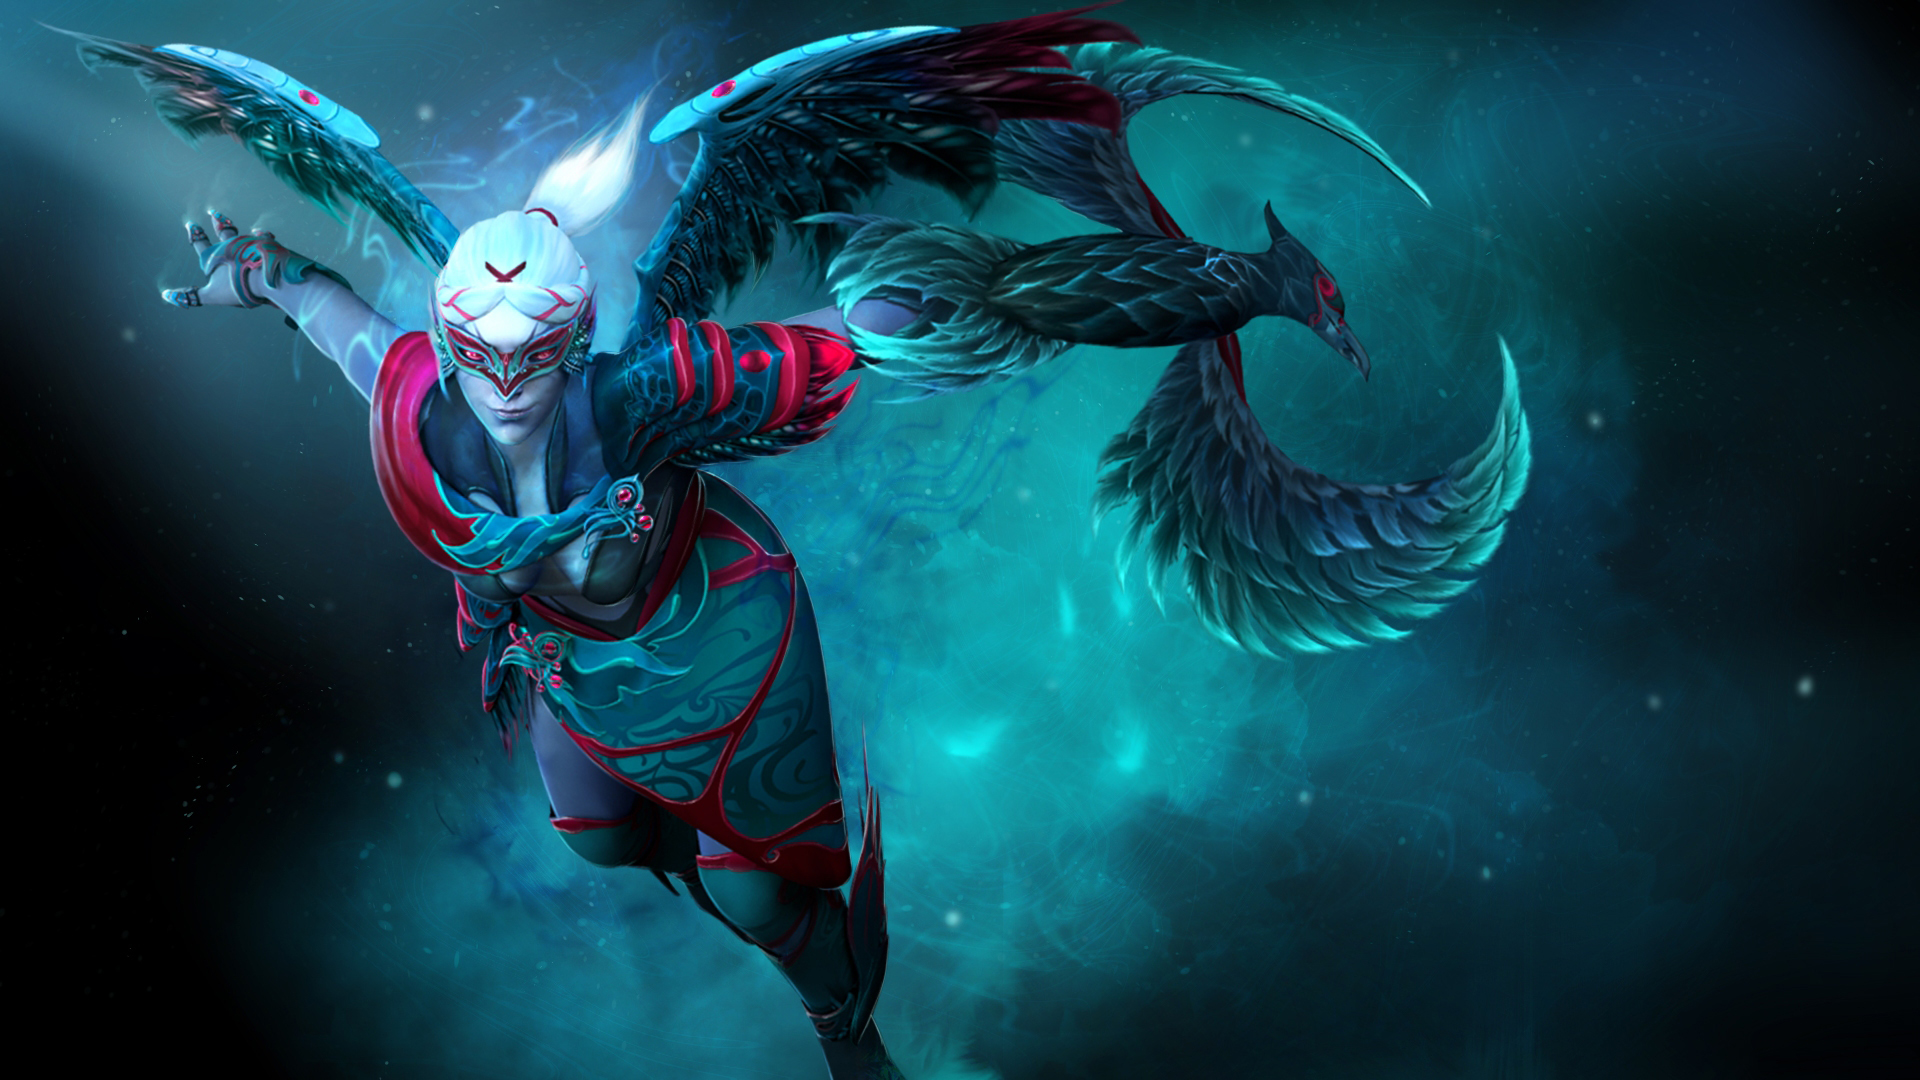 Phantom Assassin free wallpaper computer